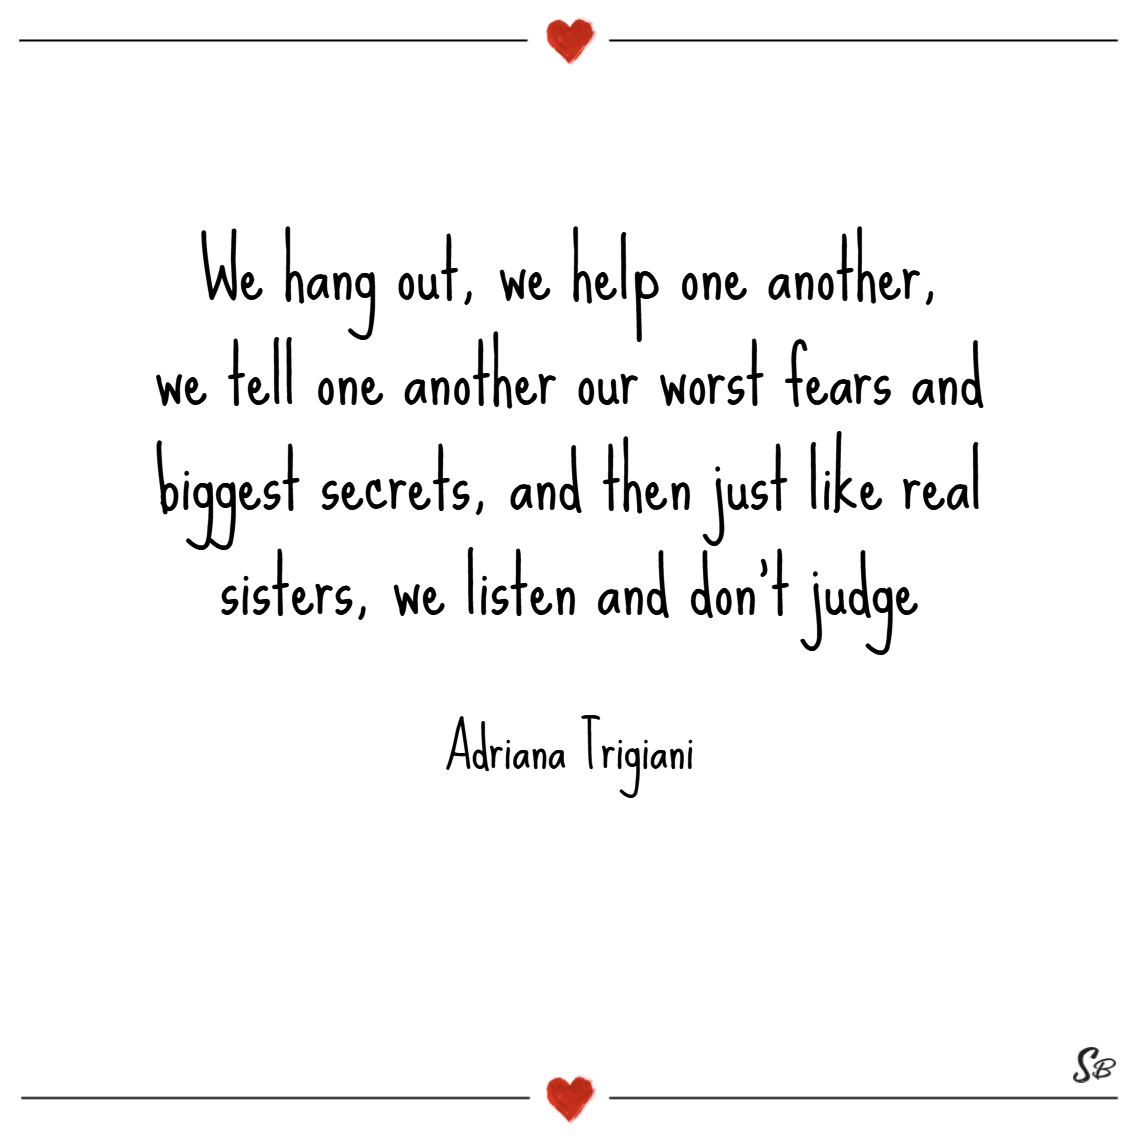 We hang out, we help one another, we tell one another our worst fears and biggest secrets, and then just like real sisters, we listen and don't judge. – adriana trigiani Brother and sister quotes